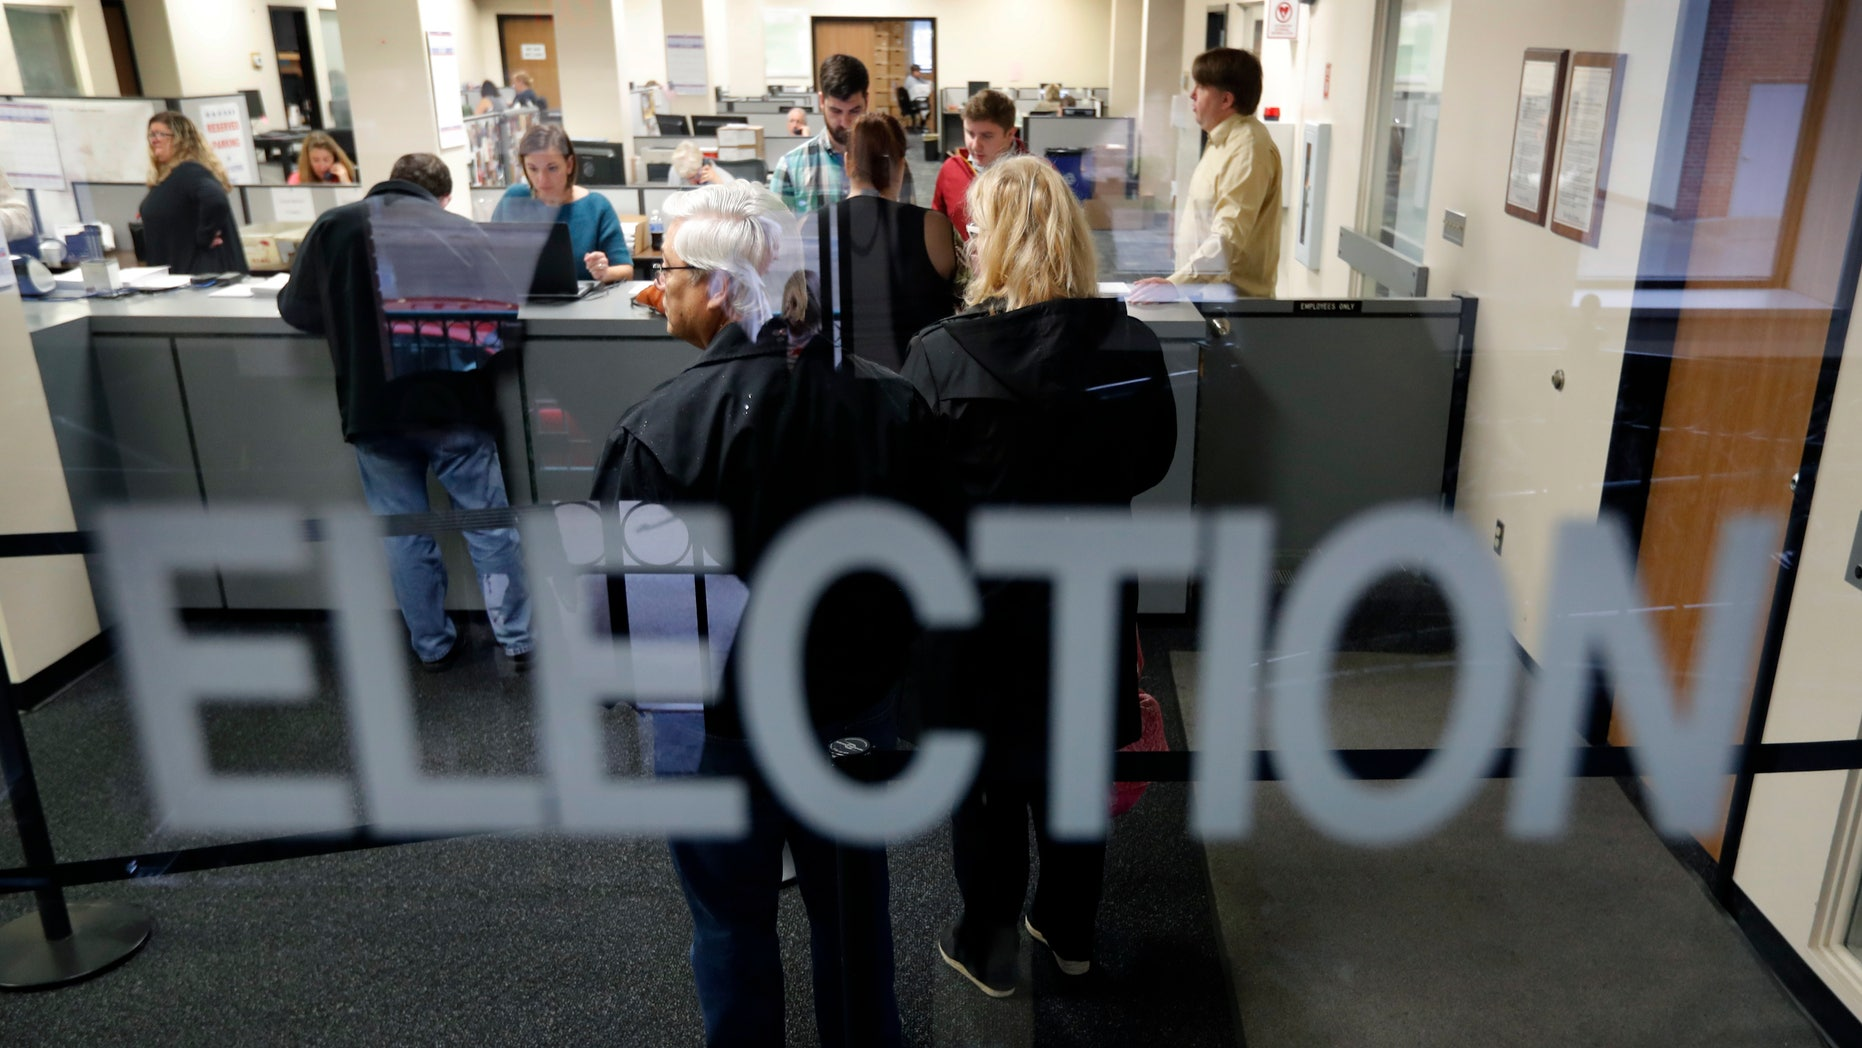 Some states allow residents to register to vote on Election Day. (AP Photo/Charlie Neibergall)